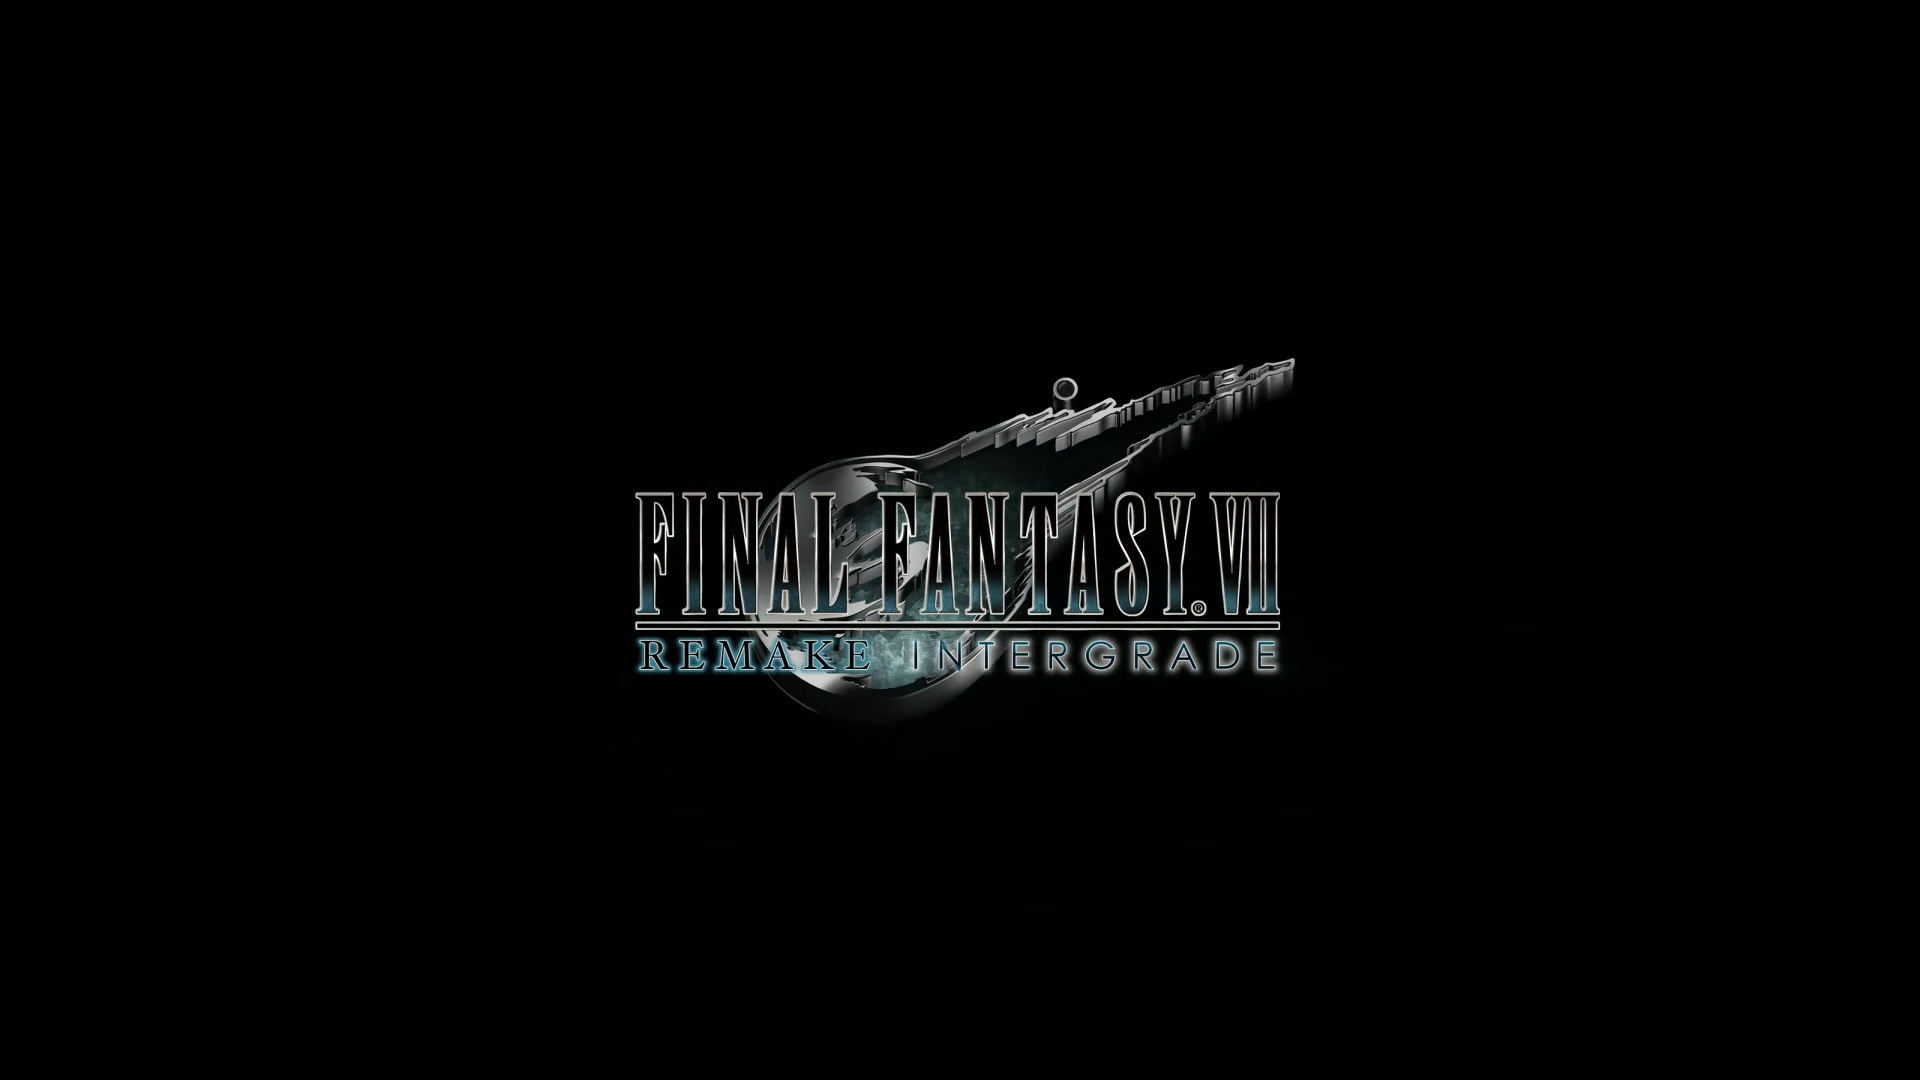 Final Fantasy VII Intergrade Announced for PlayStation 5